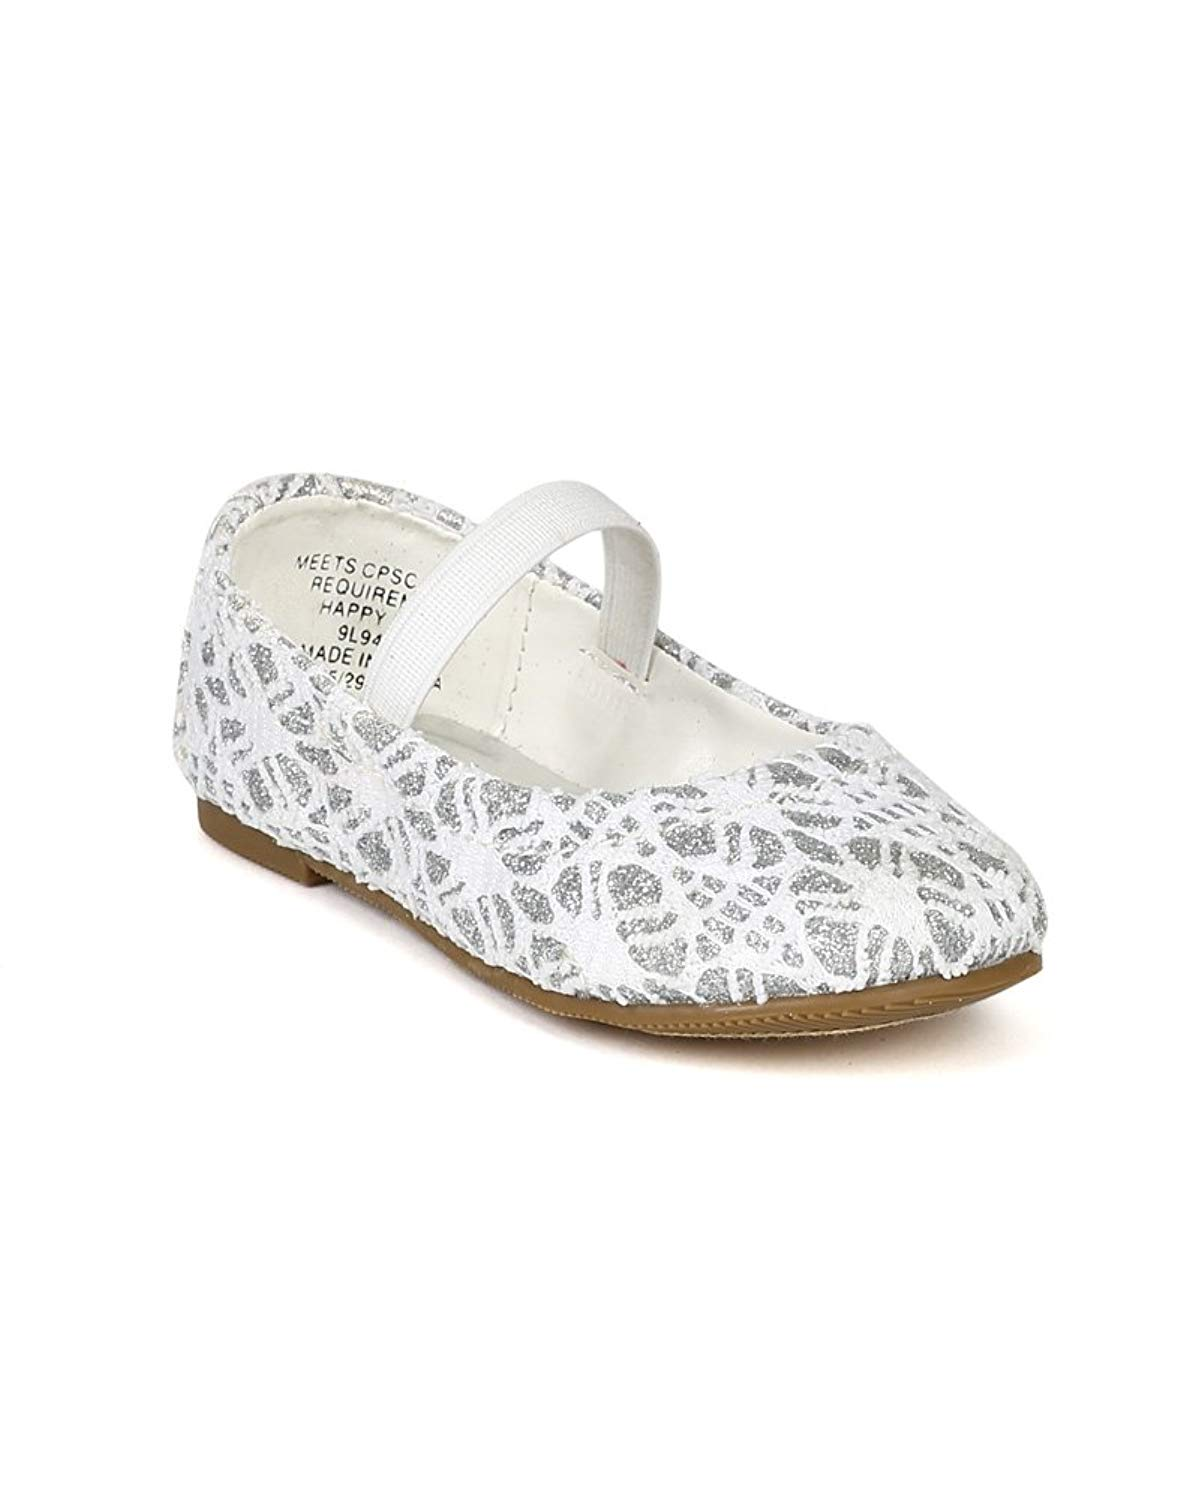 3f2af0d9cf4 Get Quotations · Happy Soda Girl Lace Round Toe Mary Jane Ballerina Flat  (Toddler) BD32 - White